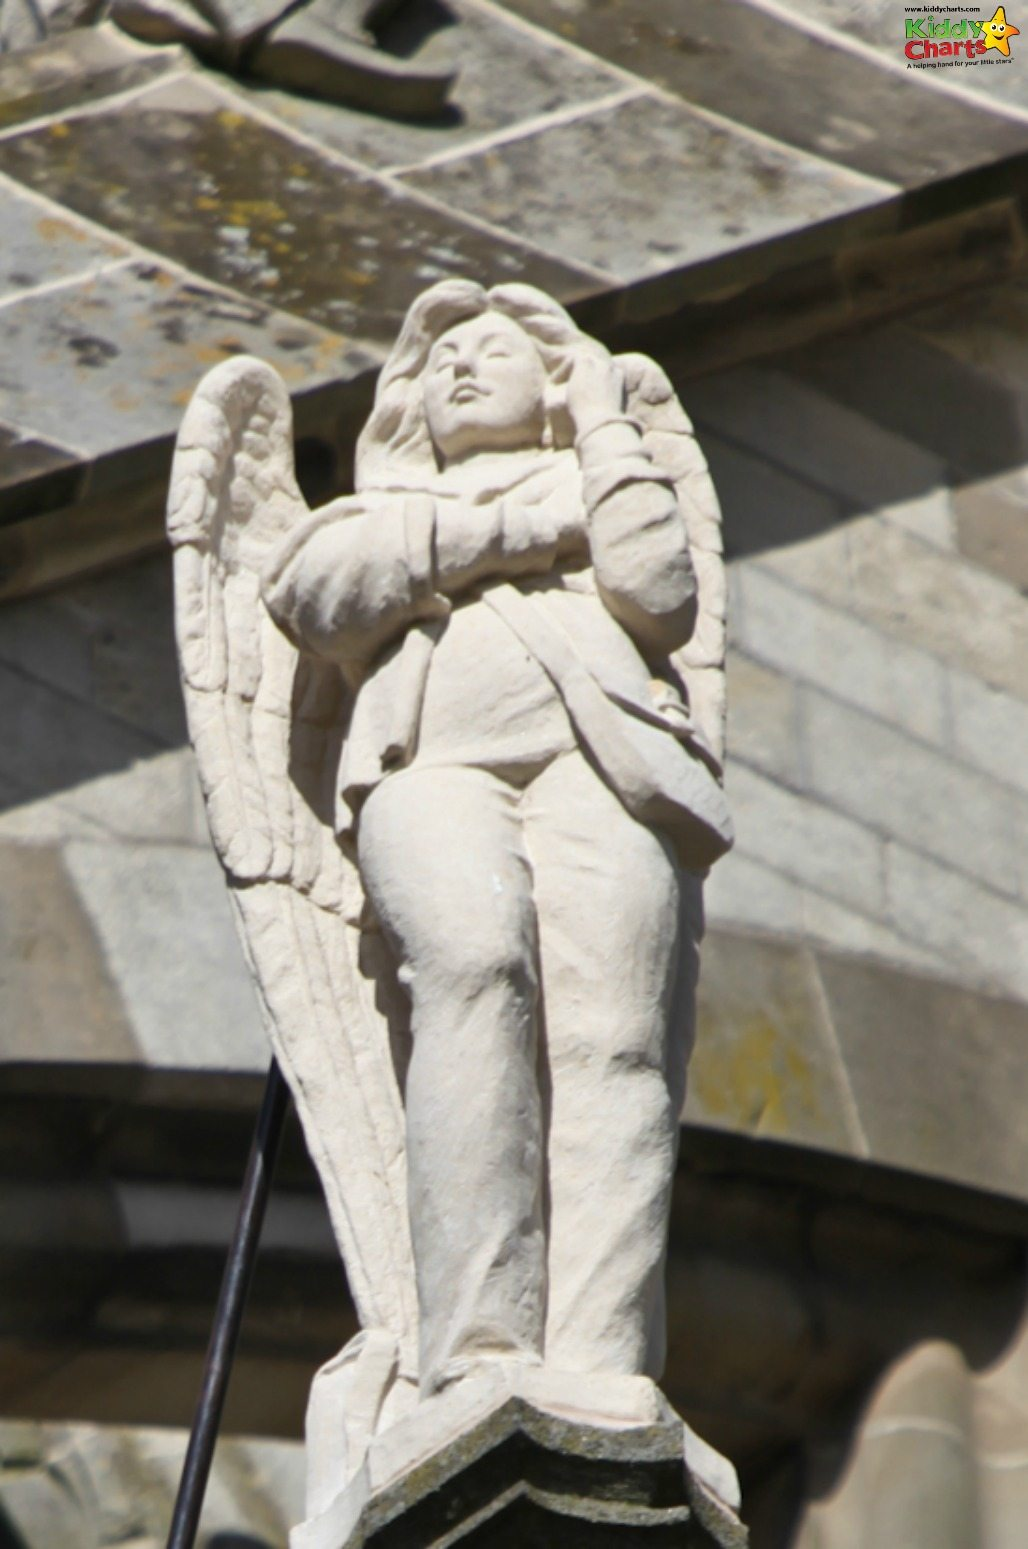 Hertogenbosch has a beautiful cathedral, with some very modern touches here and there....